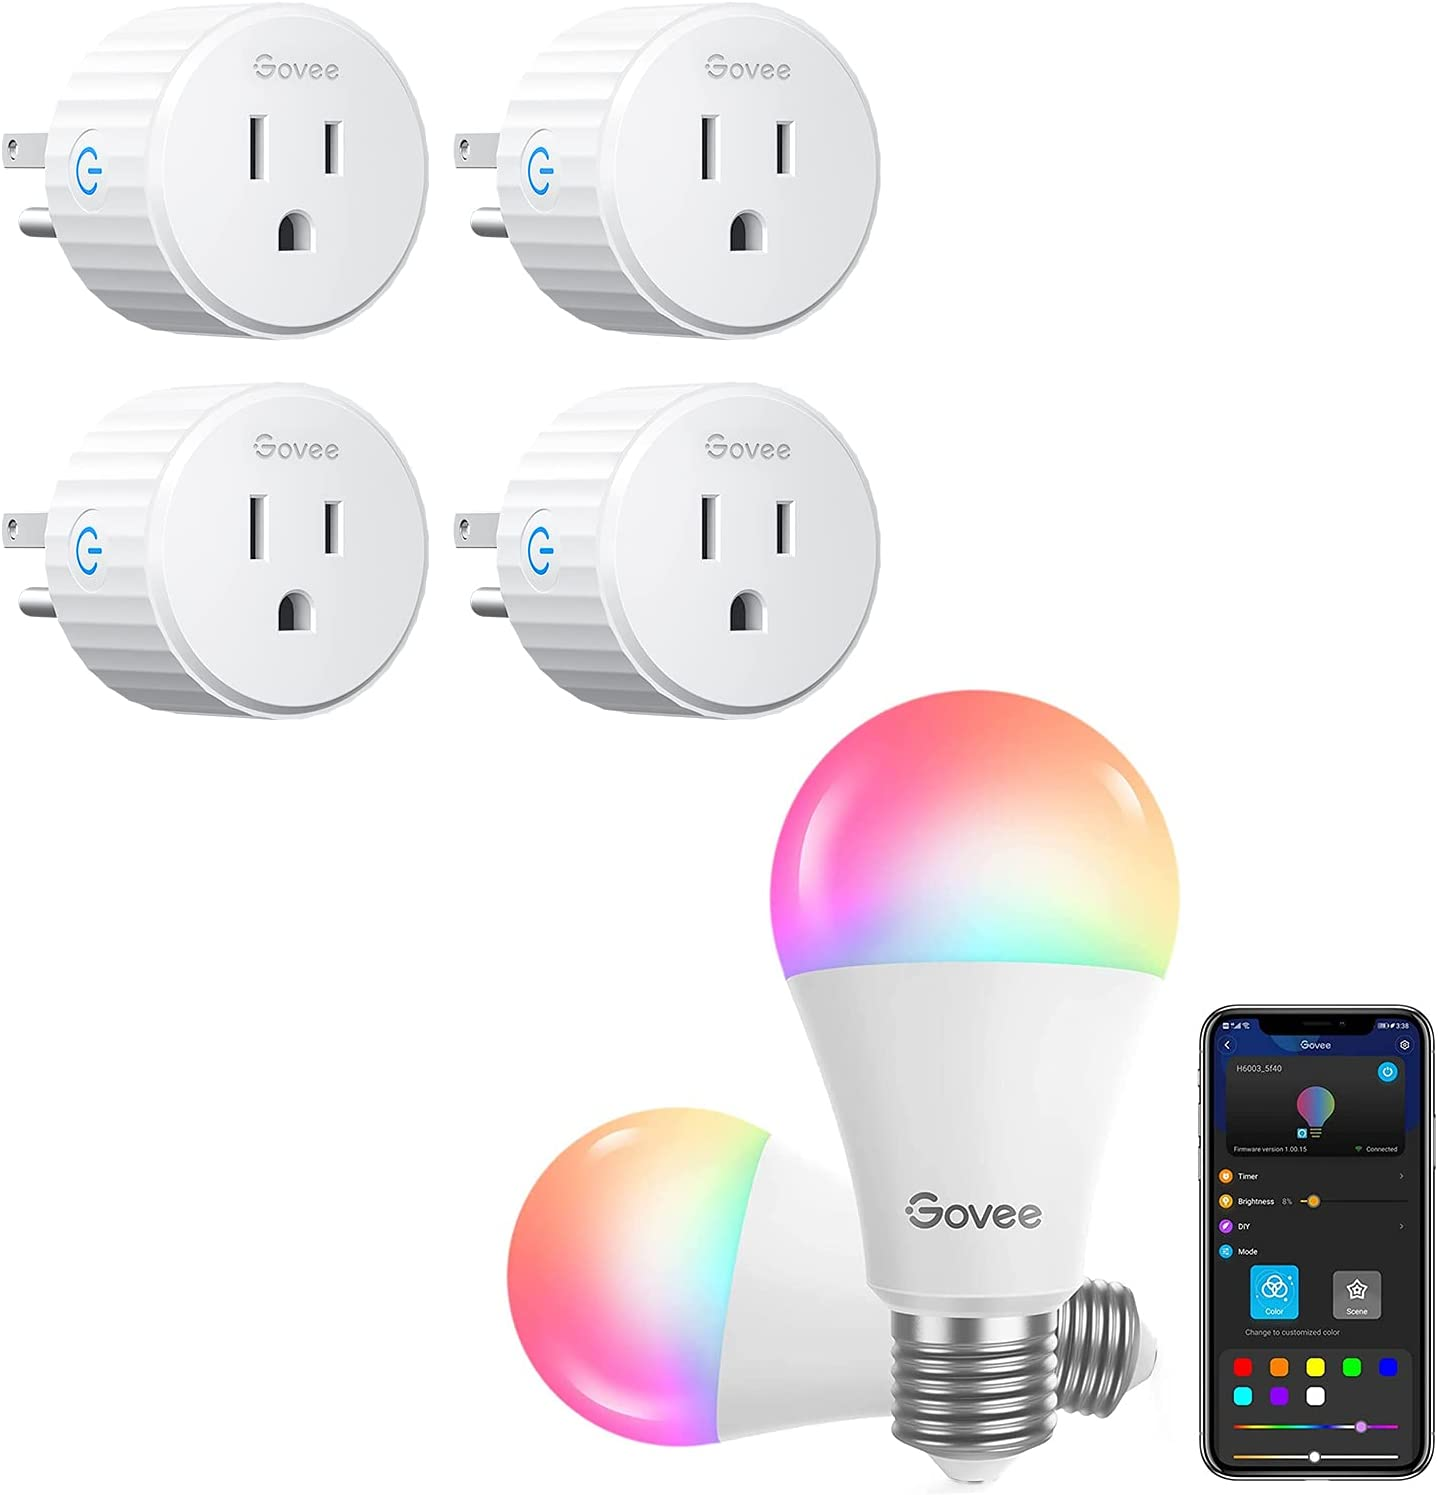 Govee Smart Light Bulbs Bundle with Govee Smart Plug, WiFi Outlet Compatible with Alexa and Google Assistant, Mini Smart Home Plugs with Timer Fuction & Group Controller